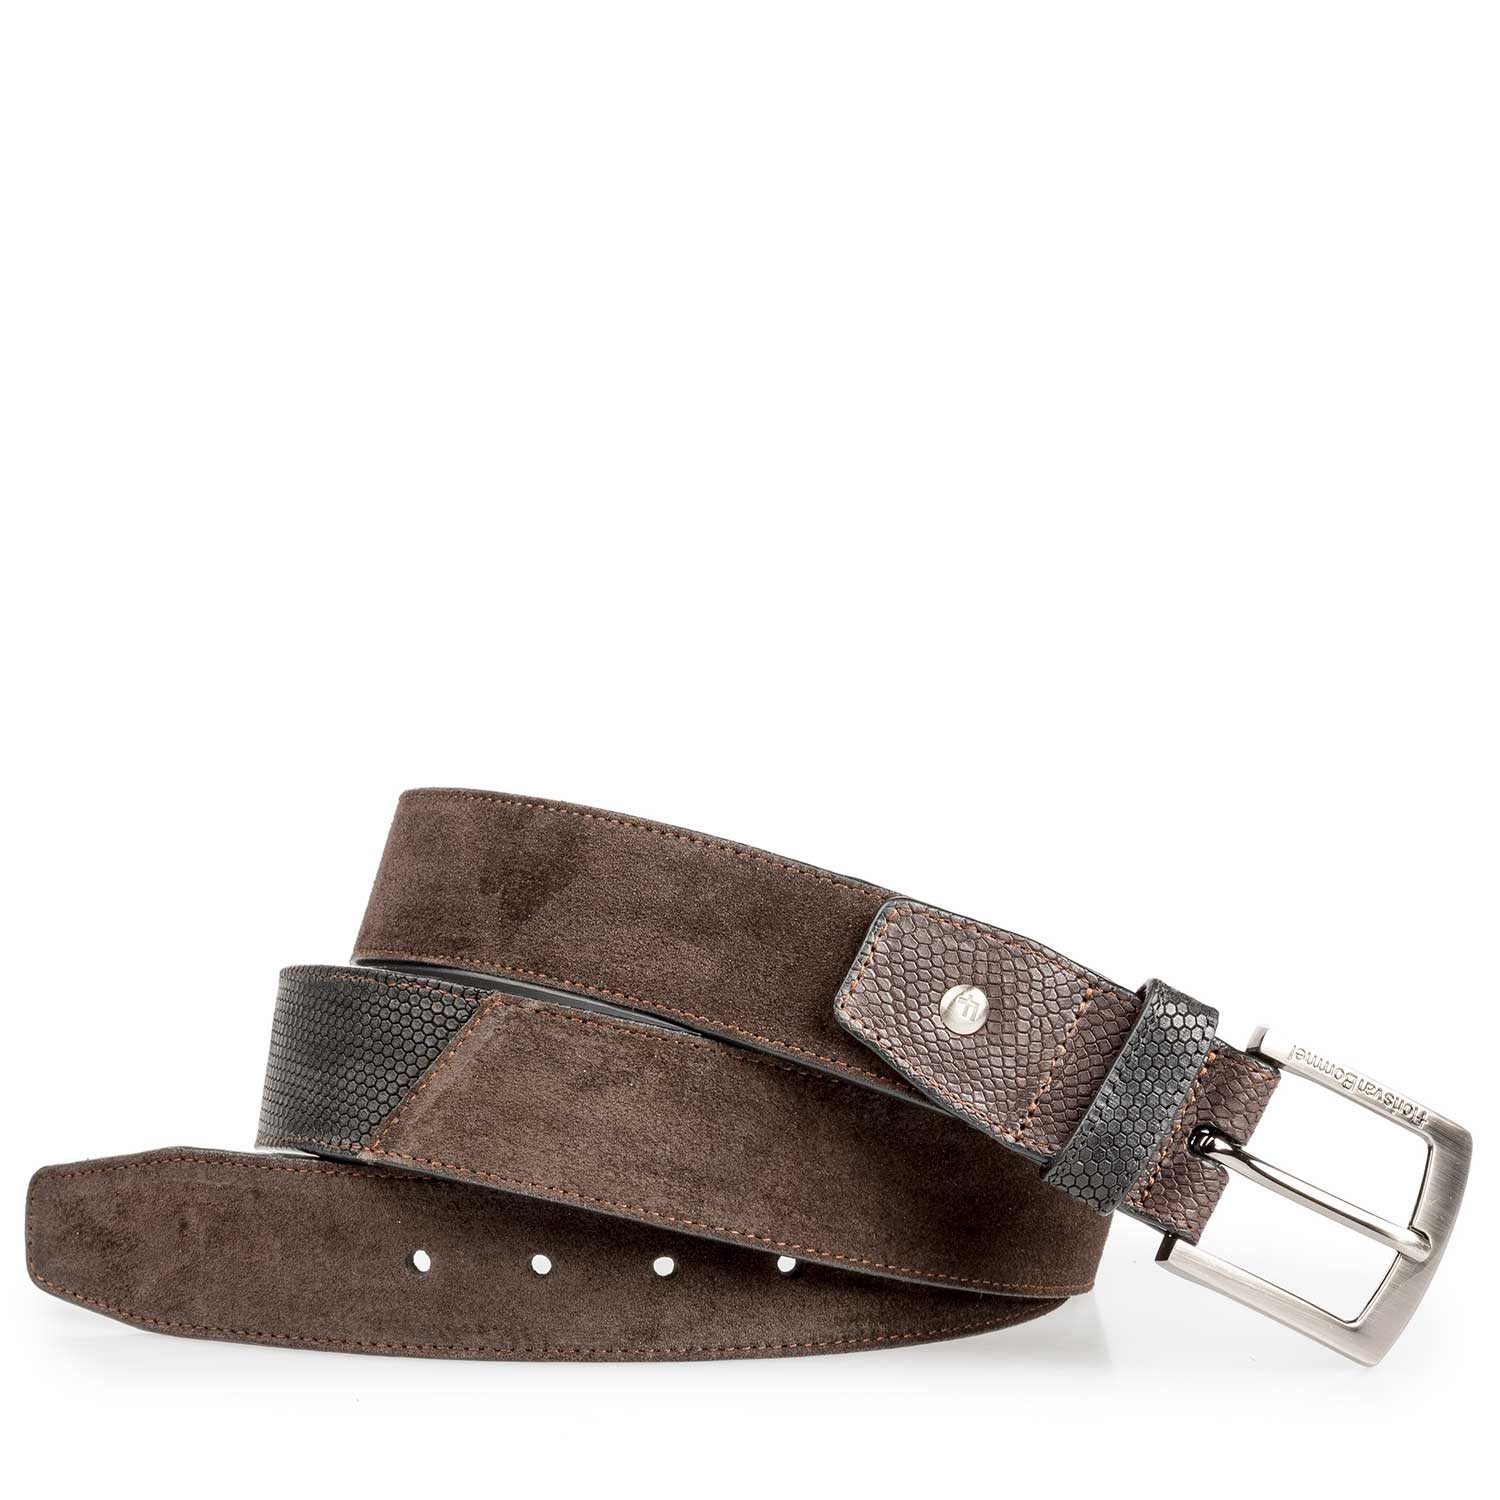 75161/14 - Brown suede leather belt